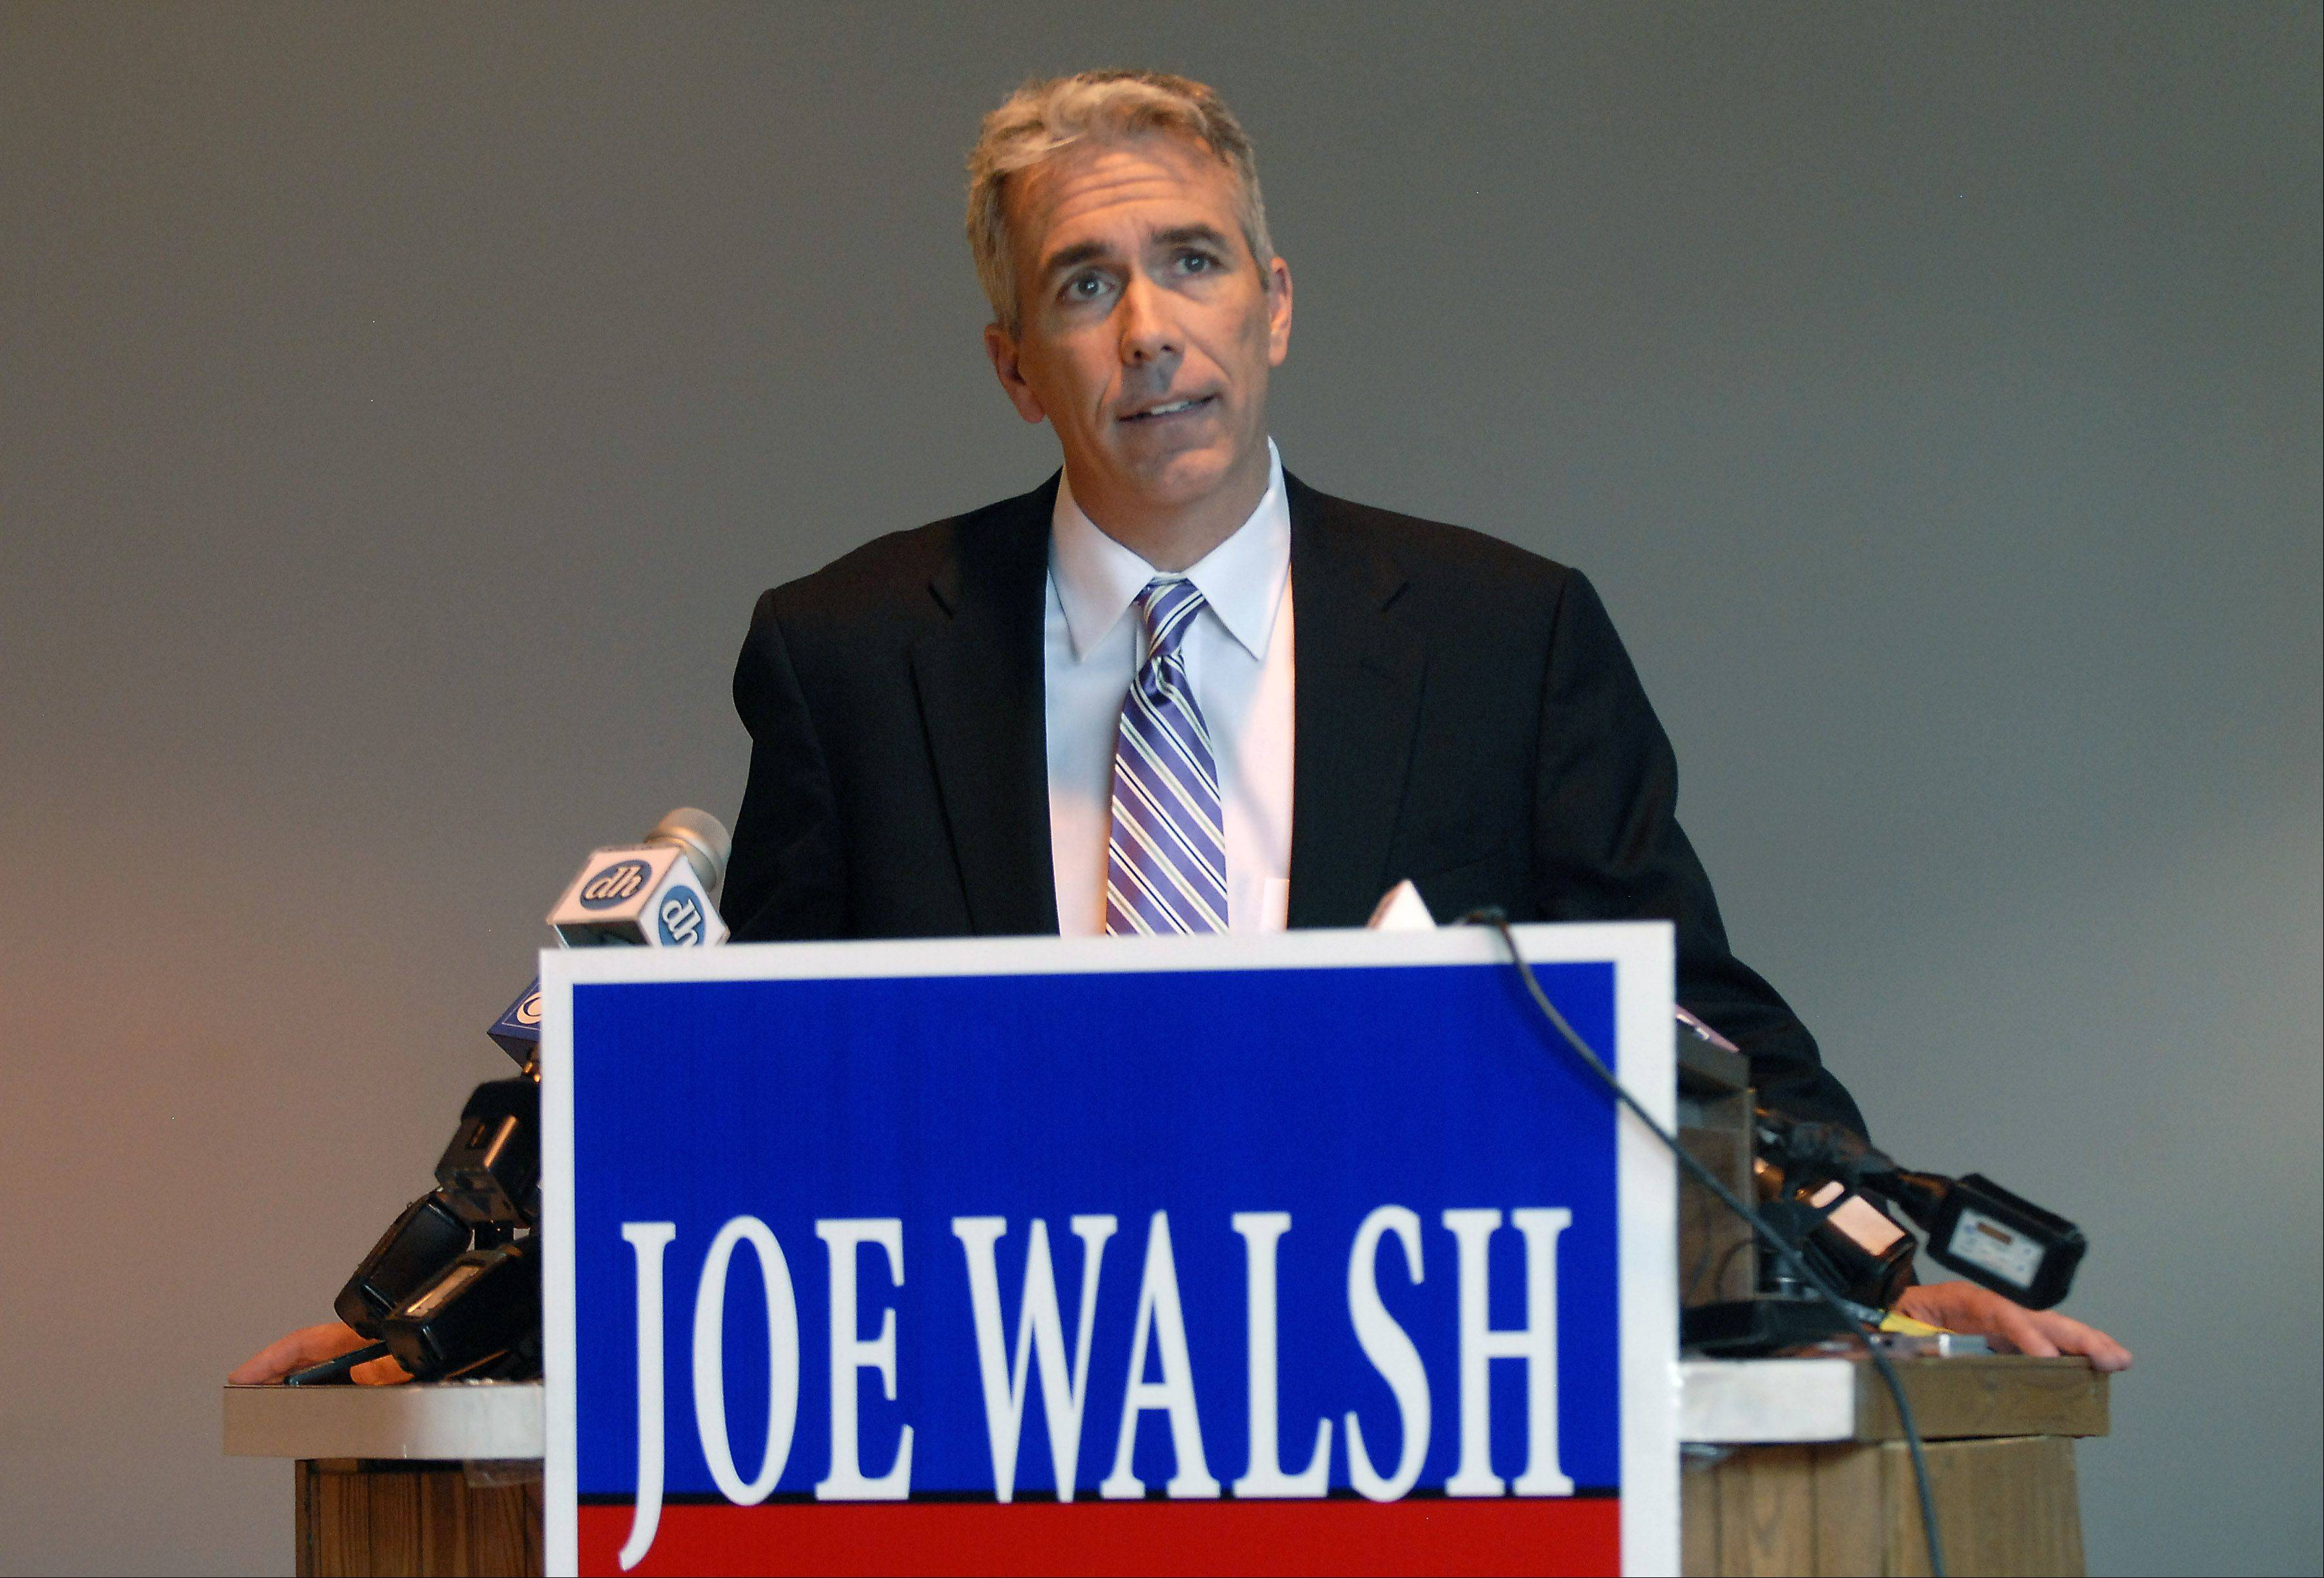 Walsh seeks to turn attention from abortion to economy